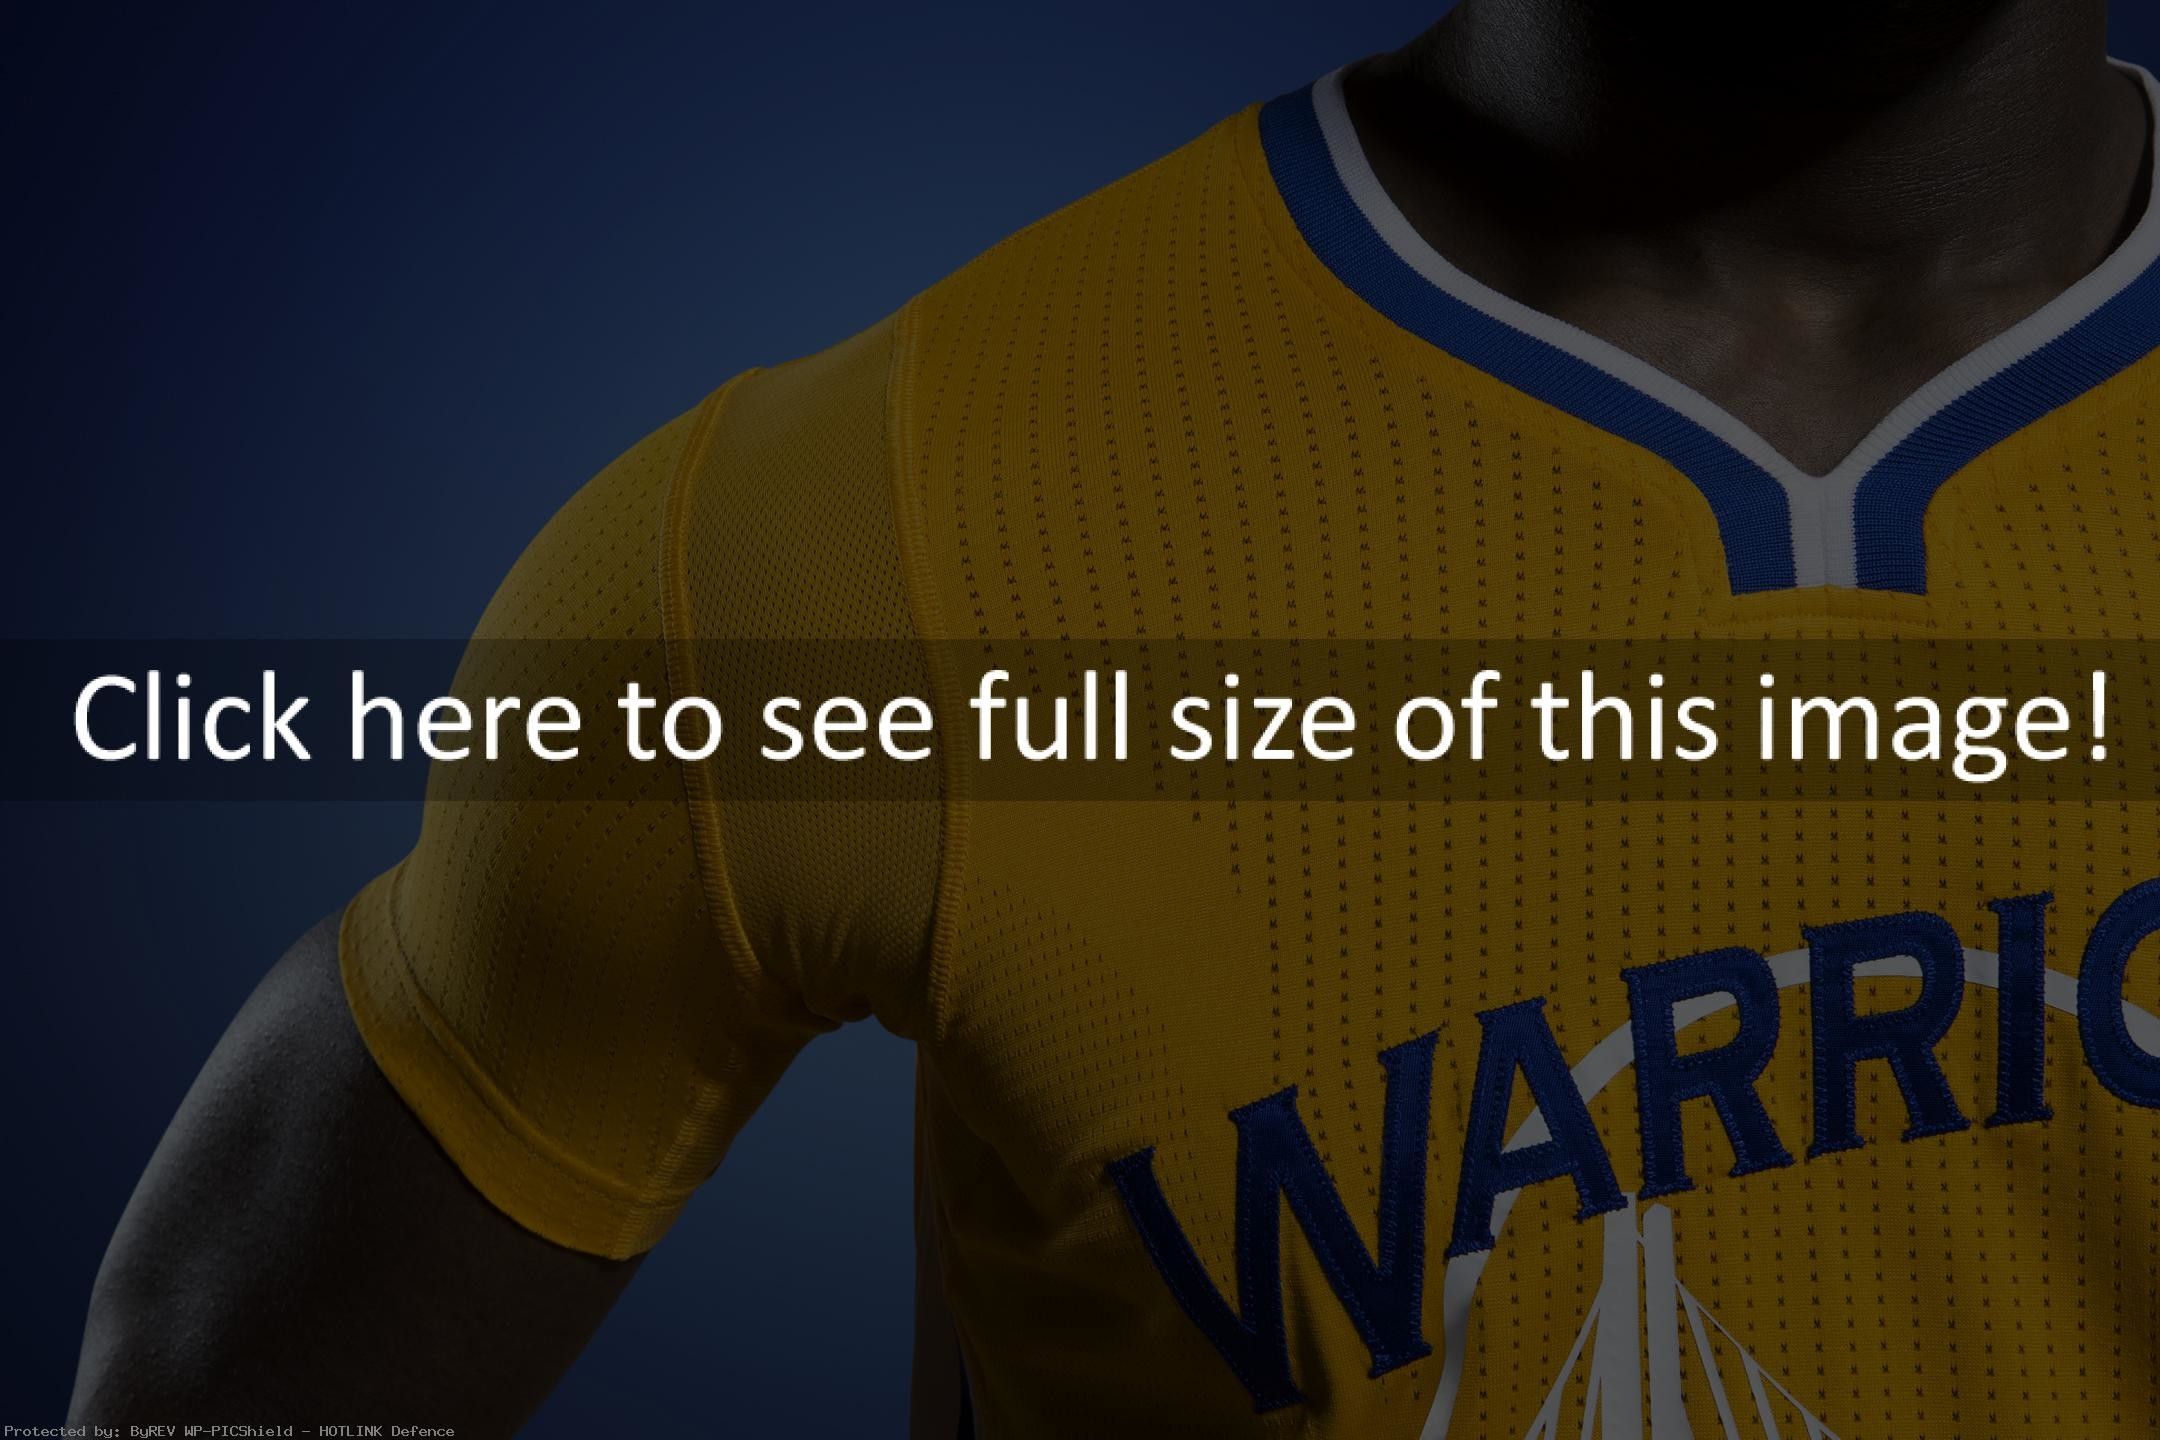 Golden State Warriors Wallpapers, Nba, Basketball, Players, San Francisco,  Oracle Arena